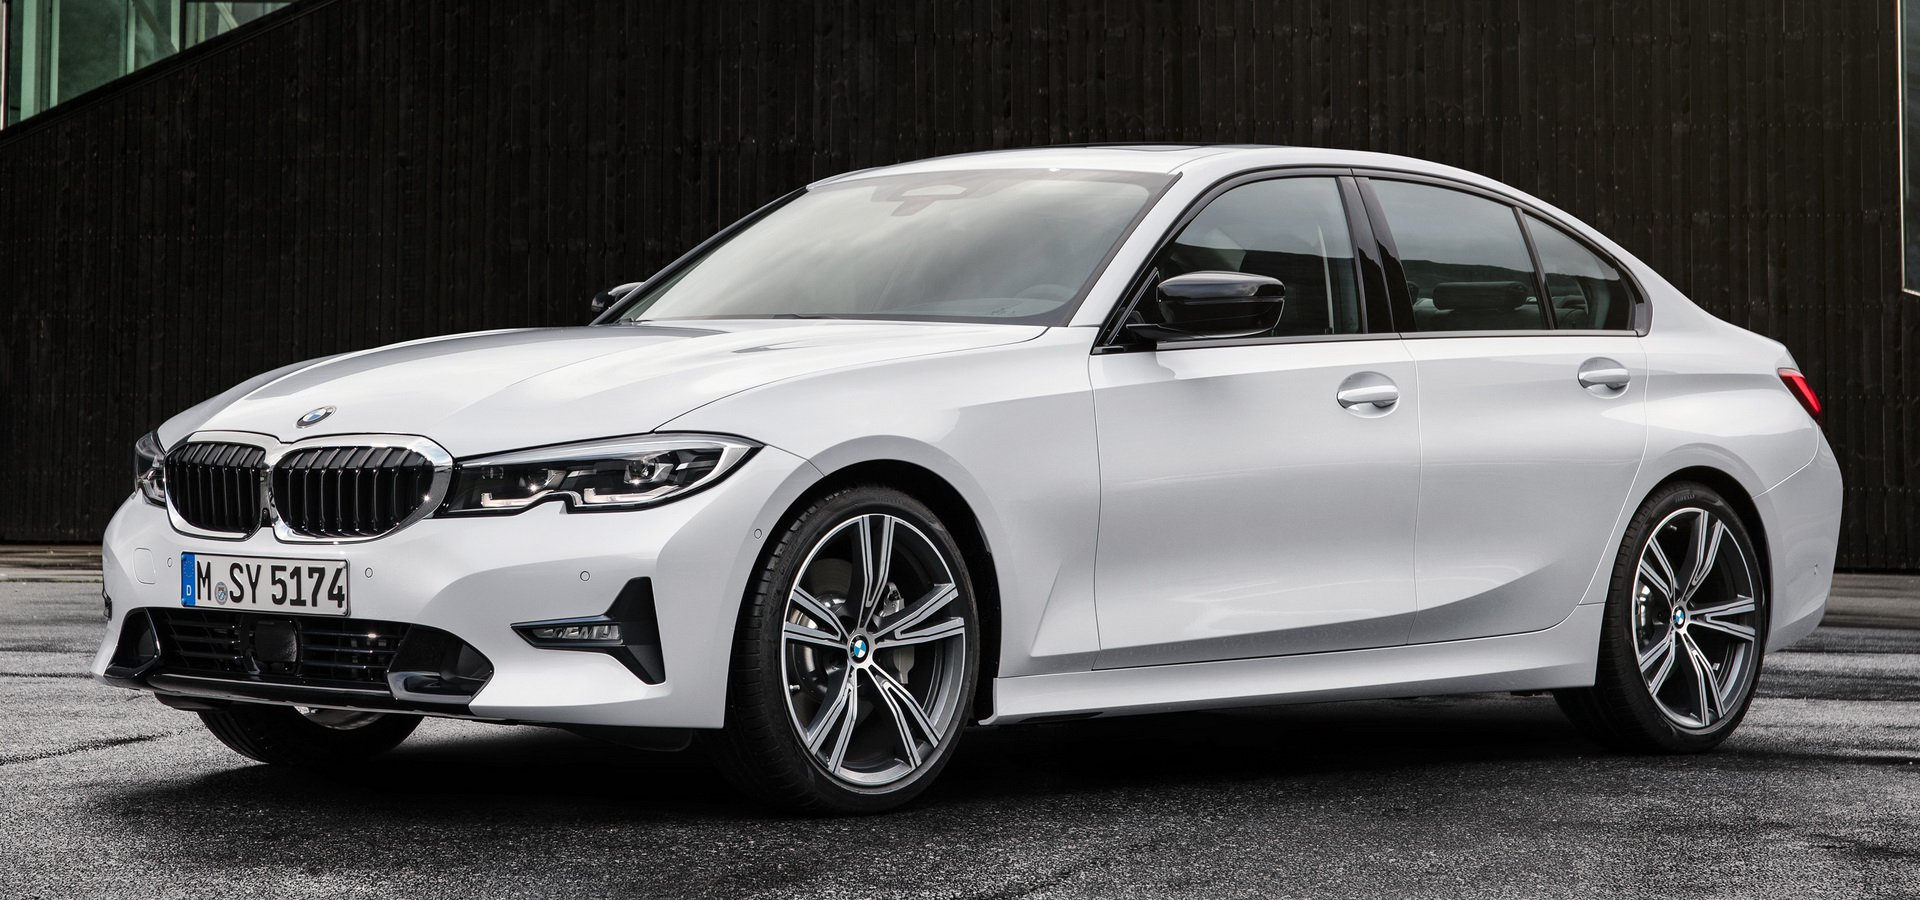 bmw-3-series-2019-doi-thu-12.jpg